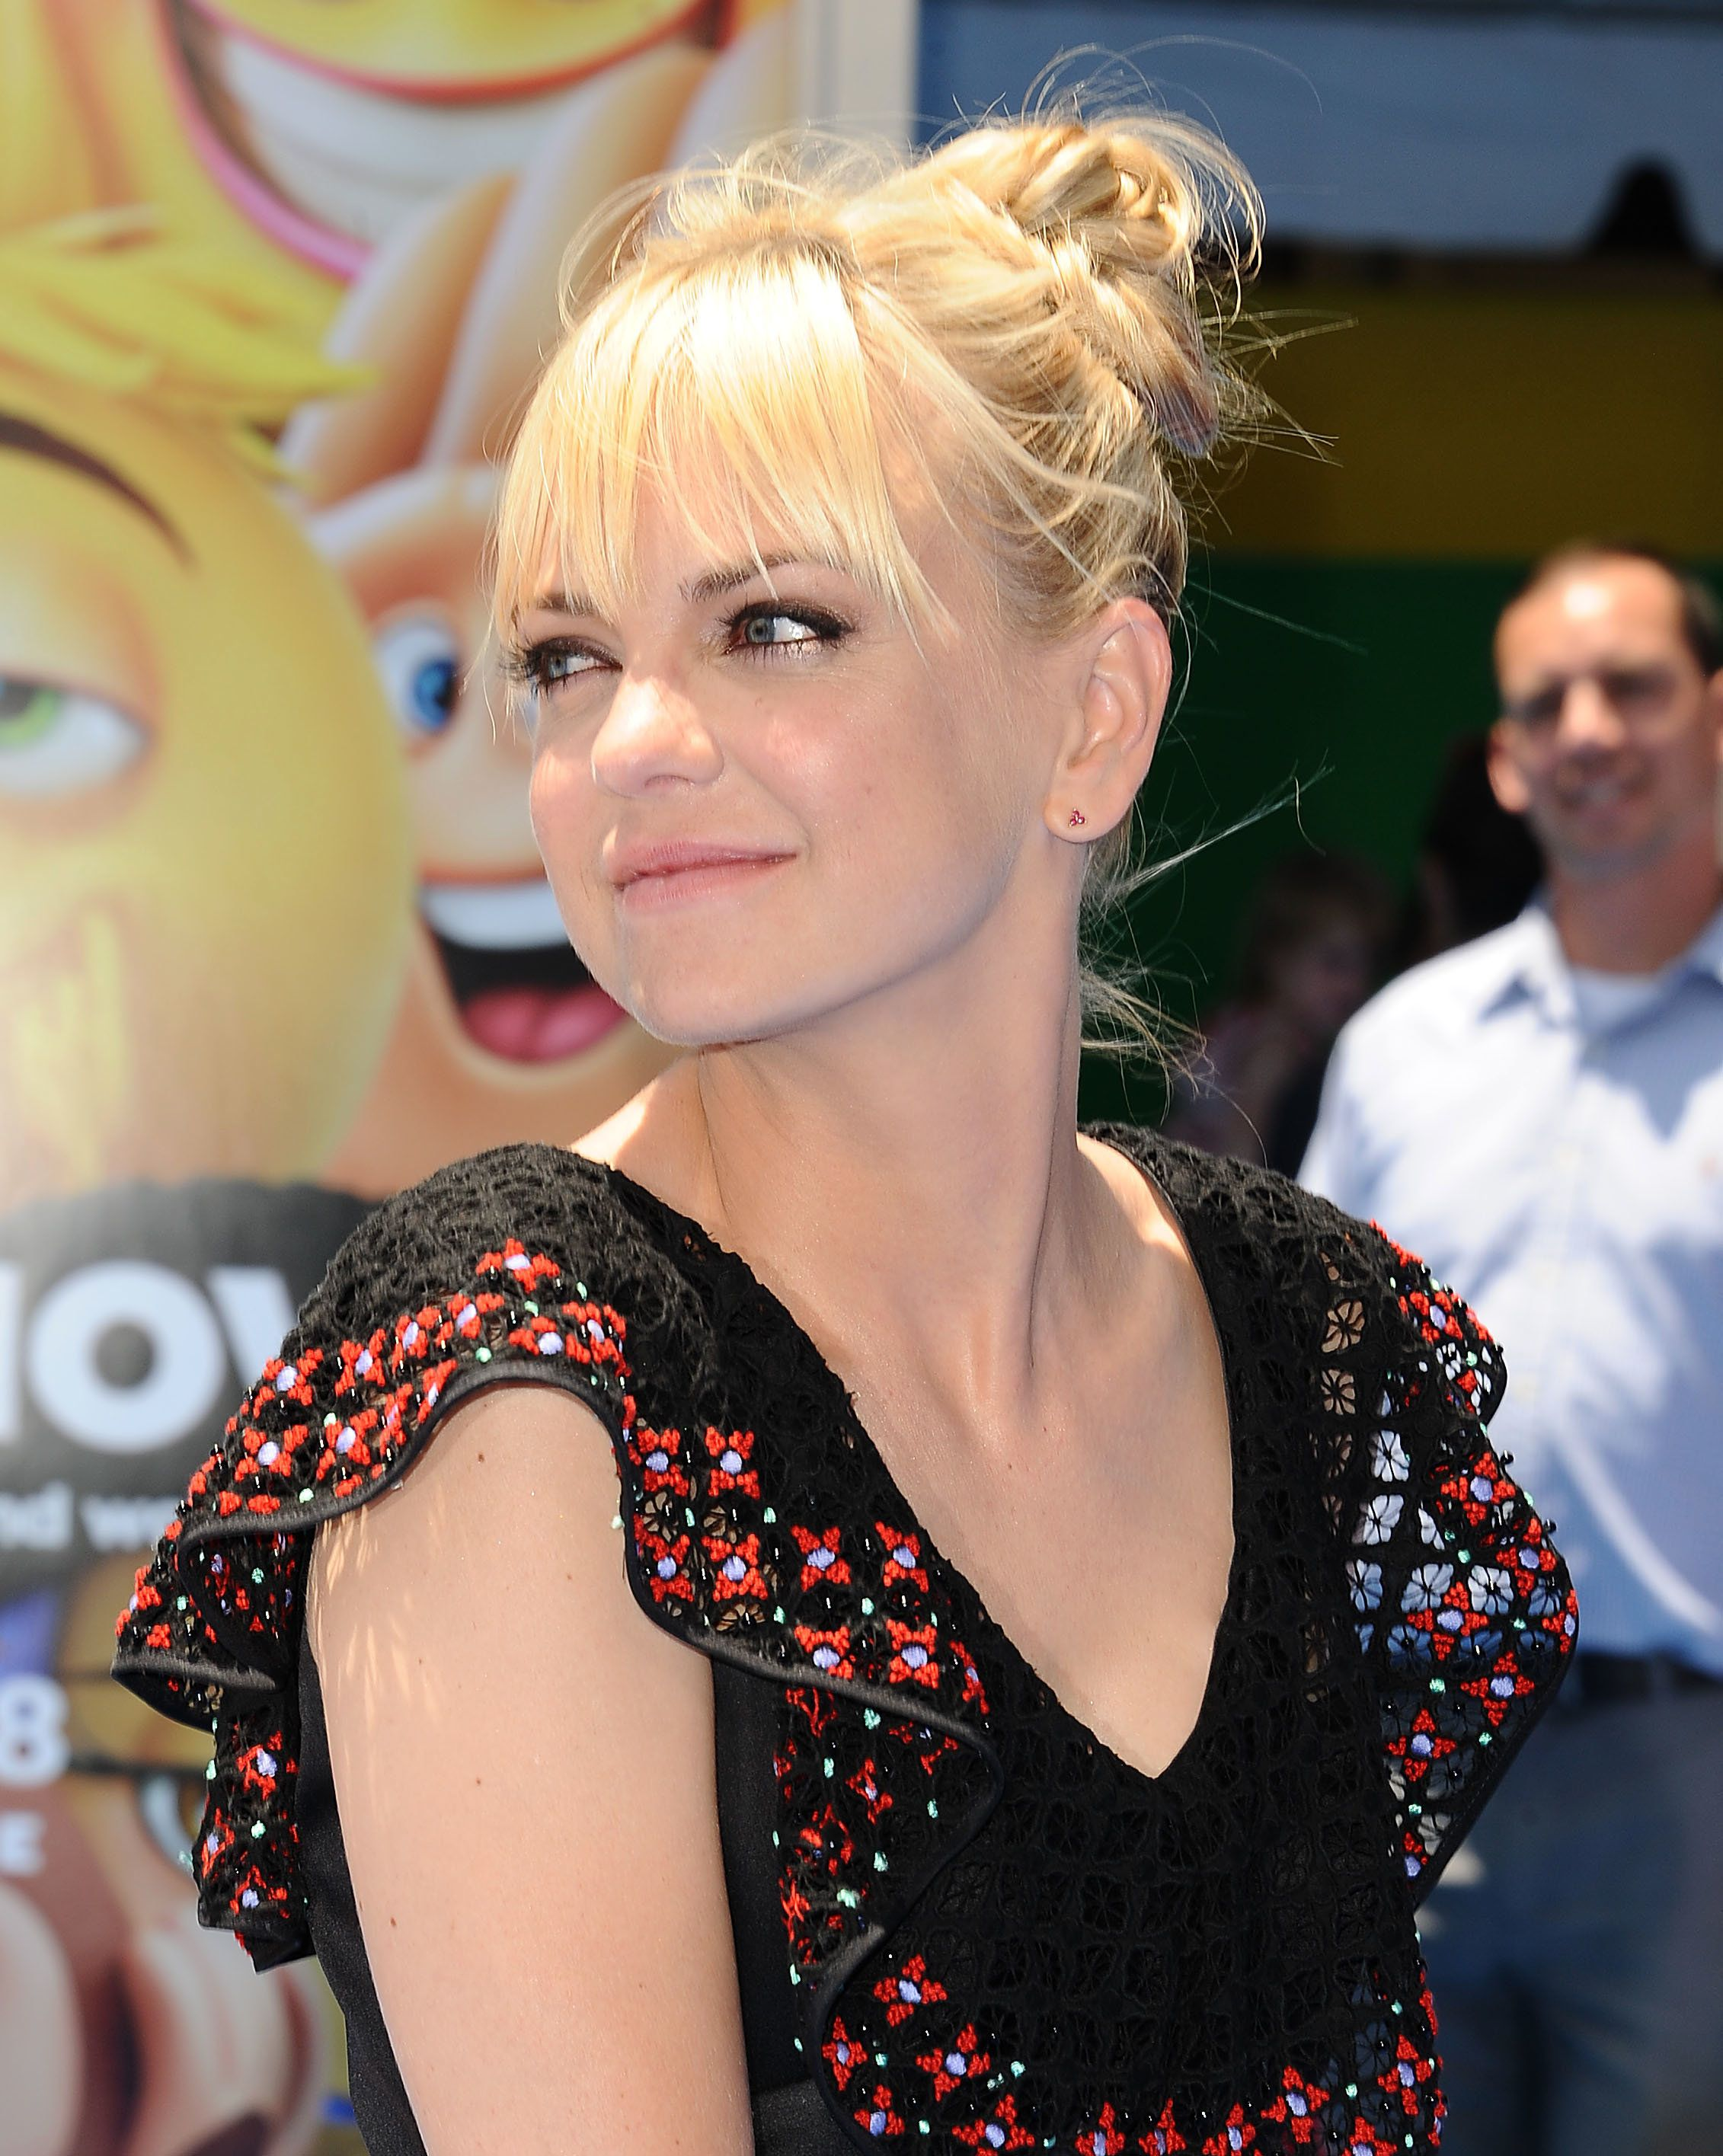 Anna Faris Breaks Silence In Wake Of Chris Pratt Break-Up